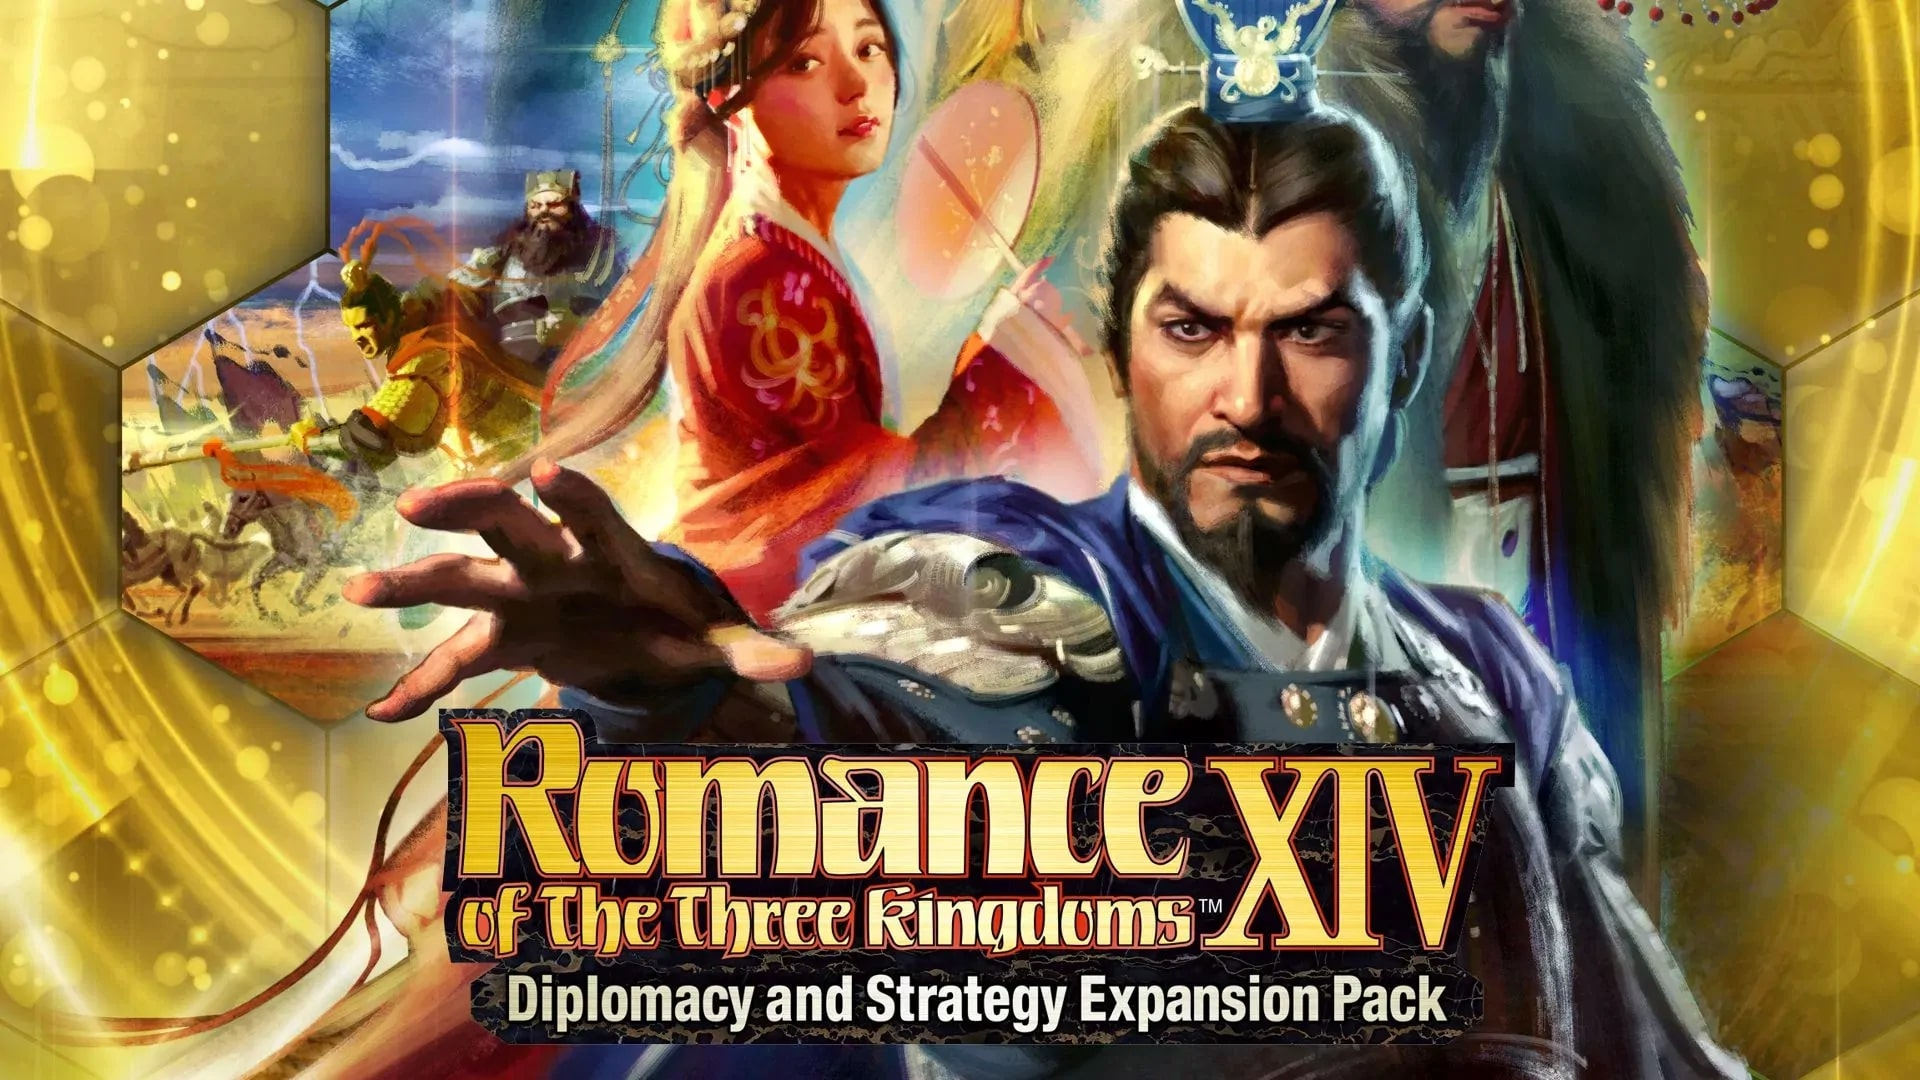 Romance-of-the-Three-Kingdoms-XIV-Diplomacy-and-Strategy-Expansion-Pack.jpg